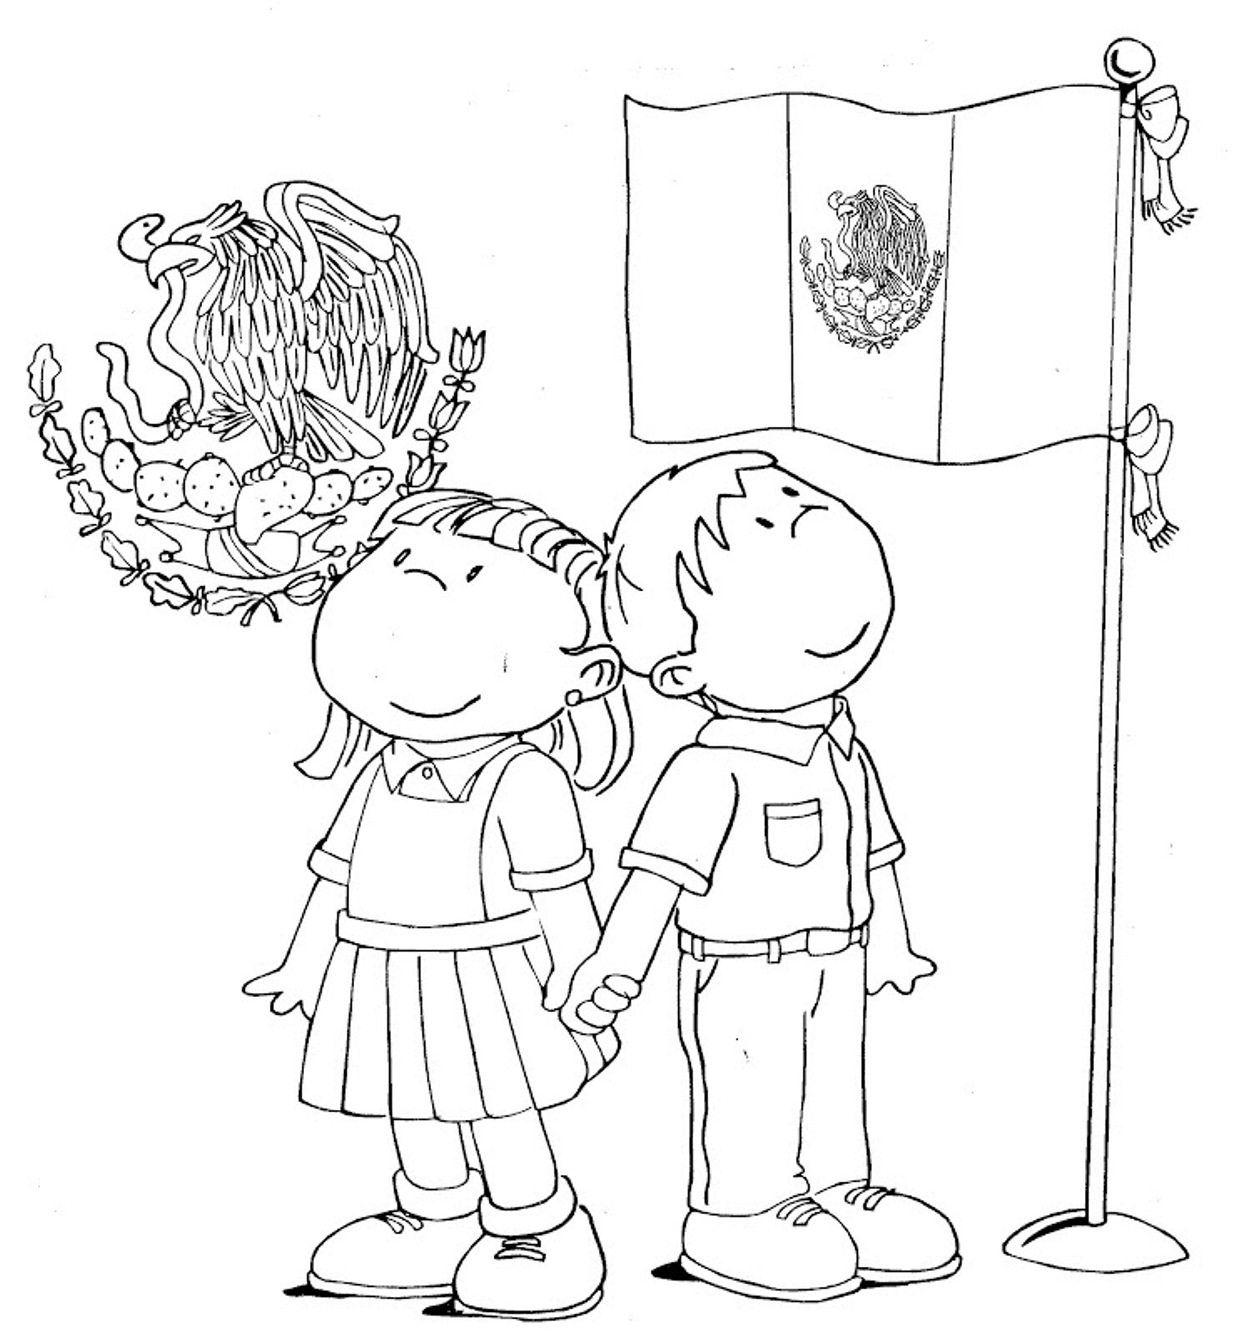 1236x1336 Flags Coloring, Mexican Flag Coloring Page Mexican Flag Coloring